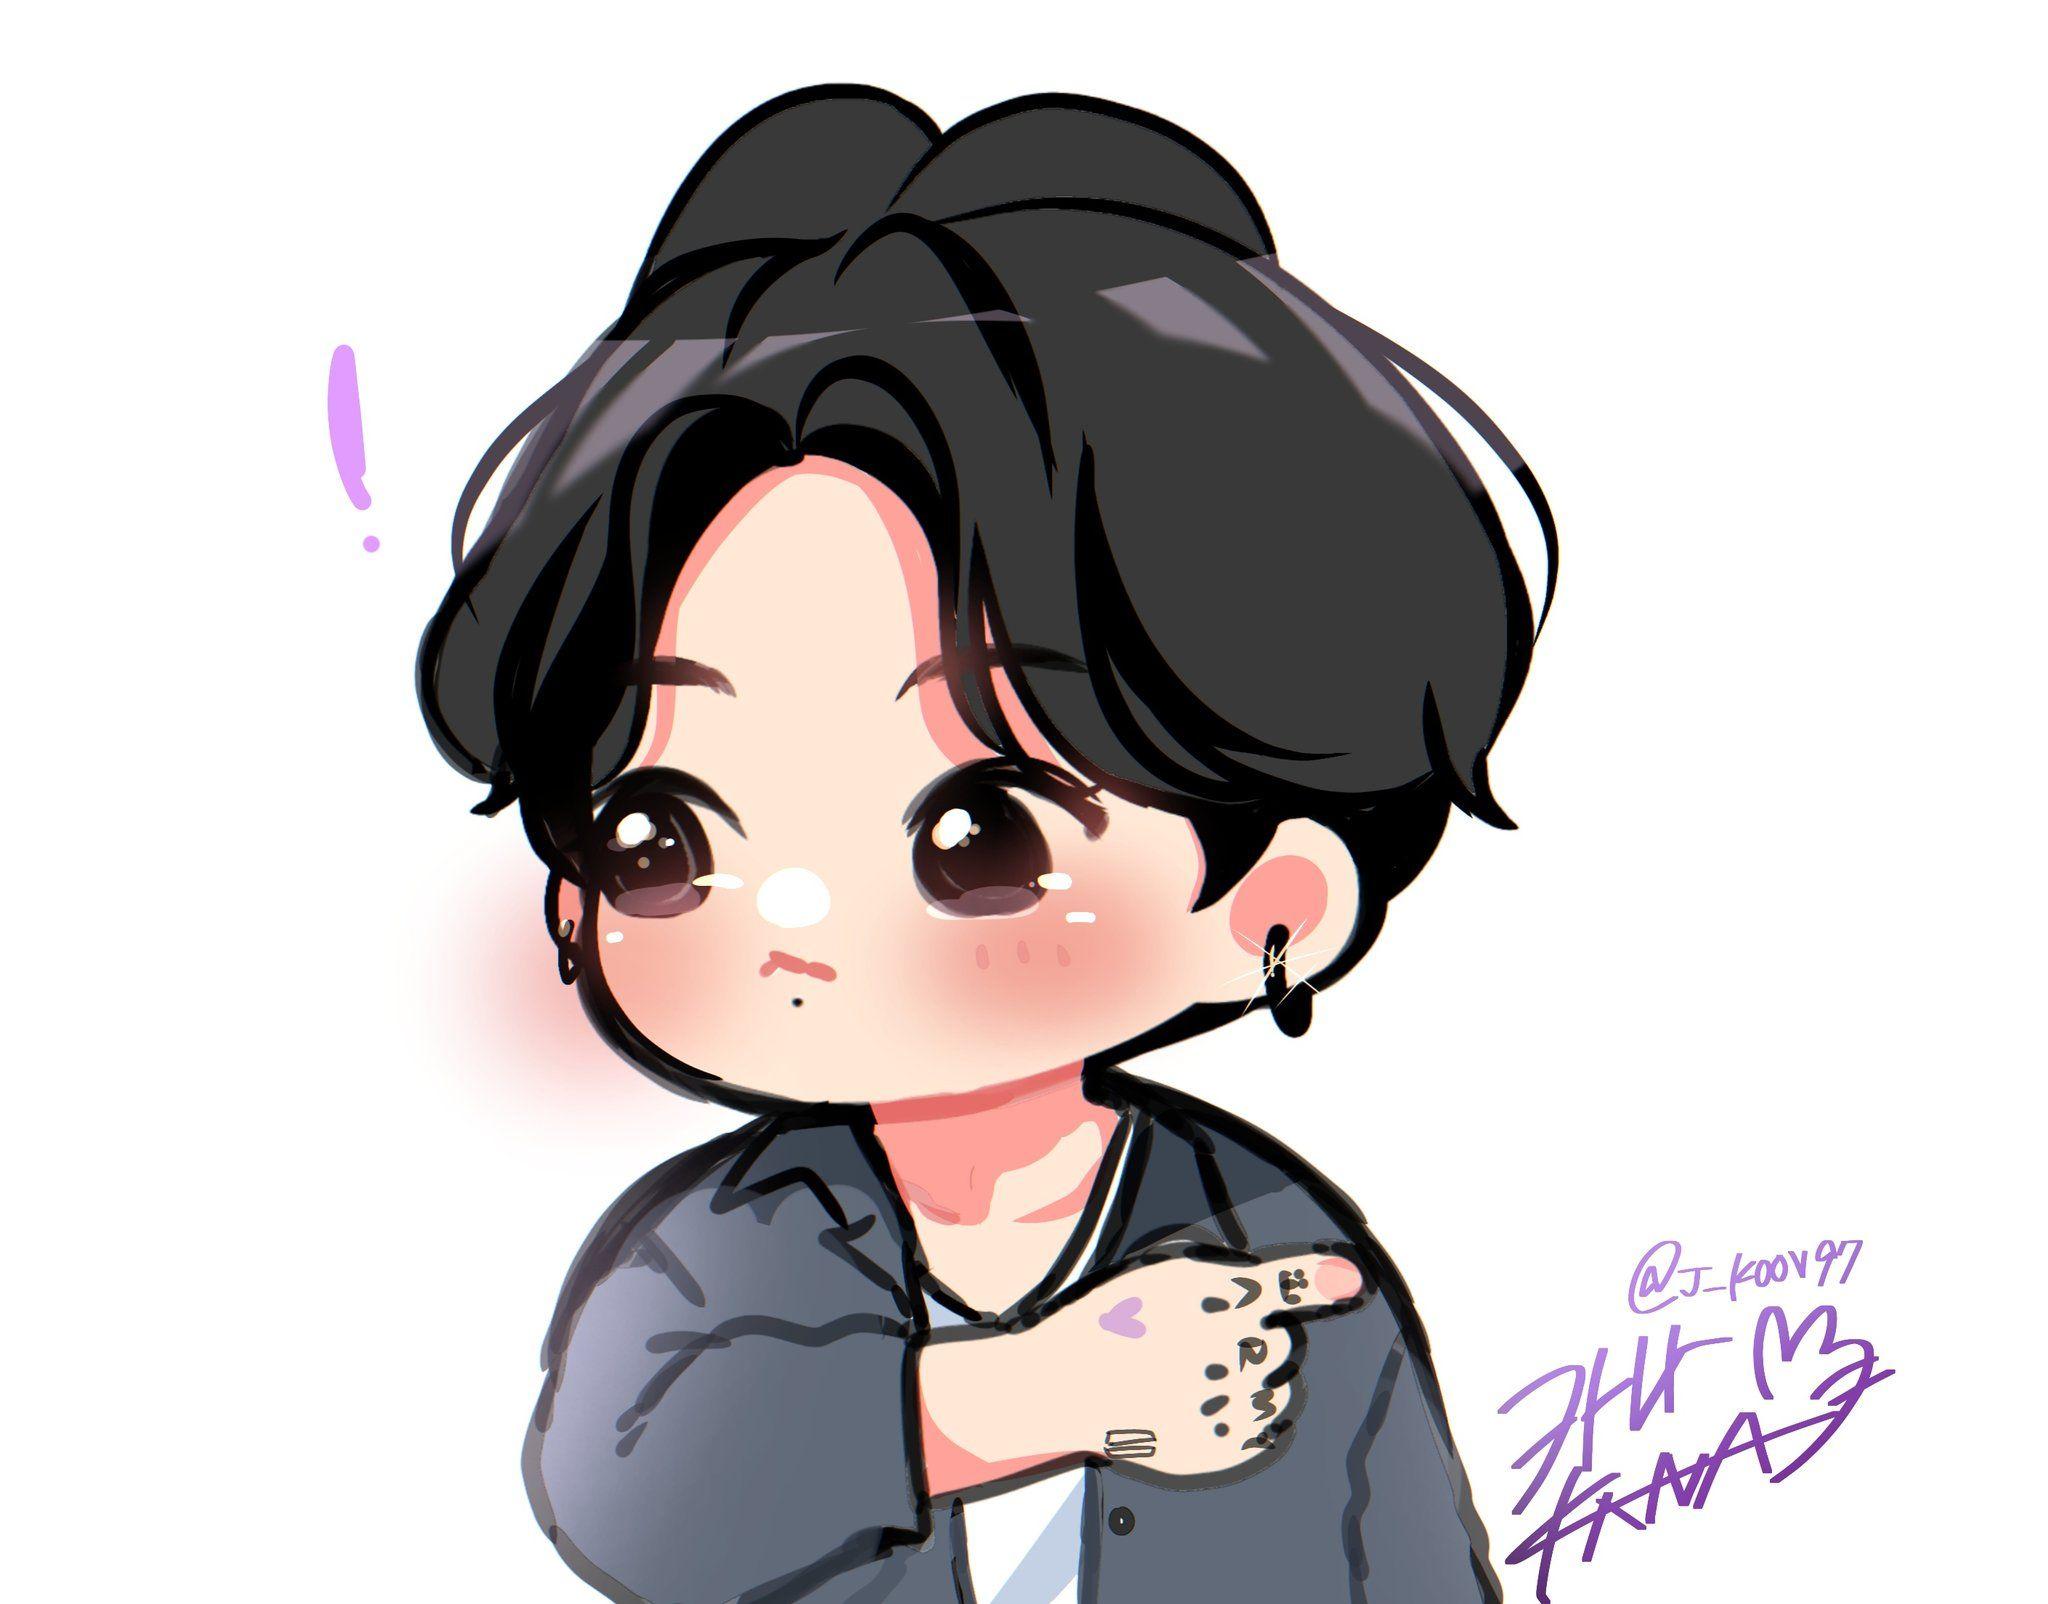 카나kana/busy on Twitter in 2020 Bts chibi, Bts fanart